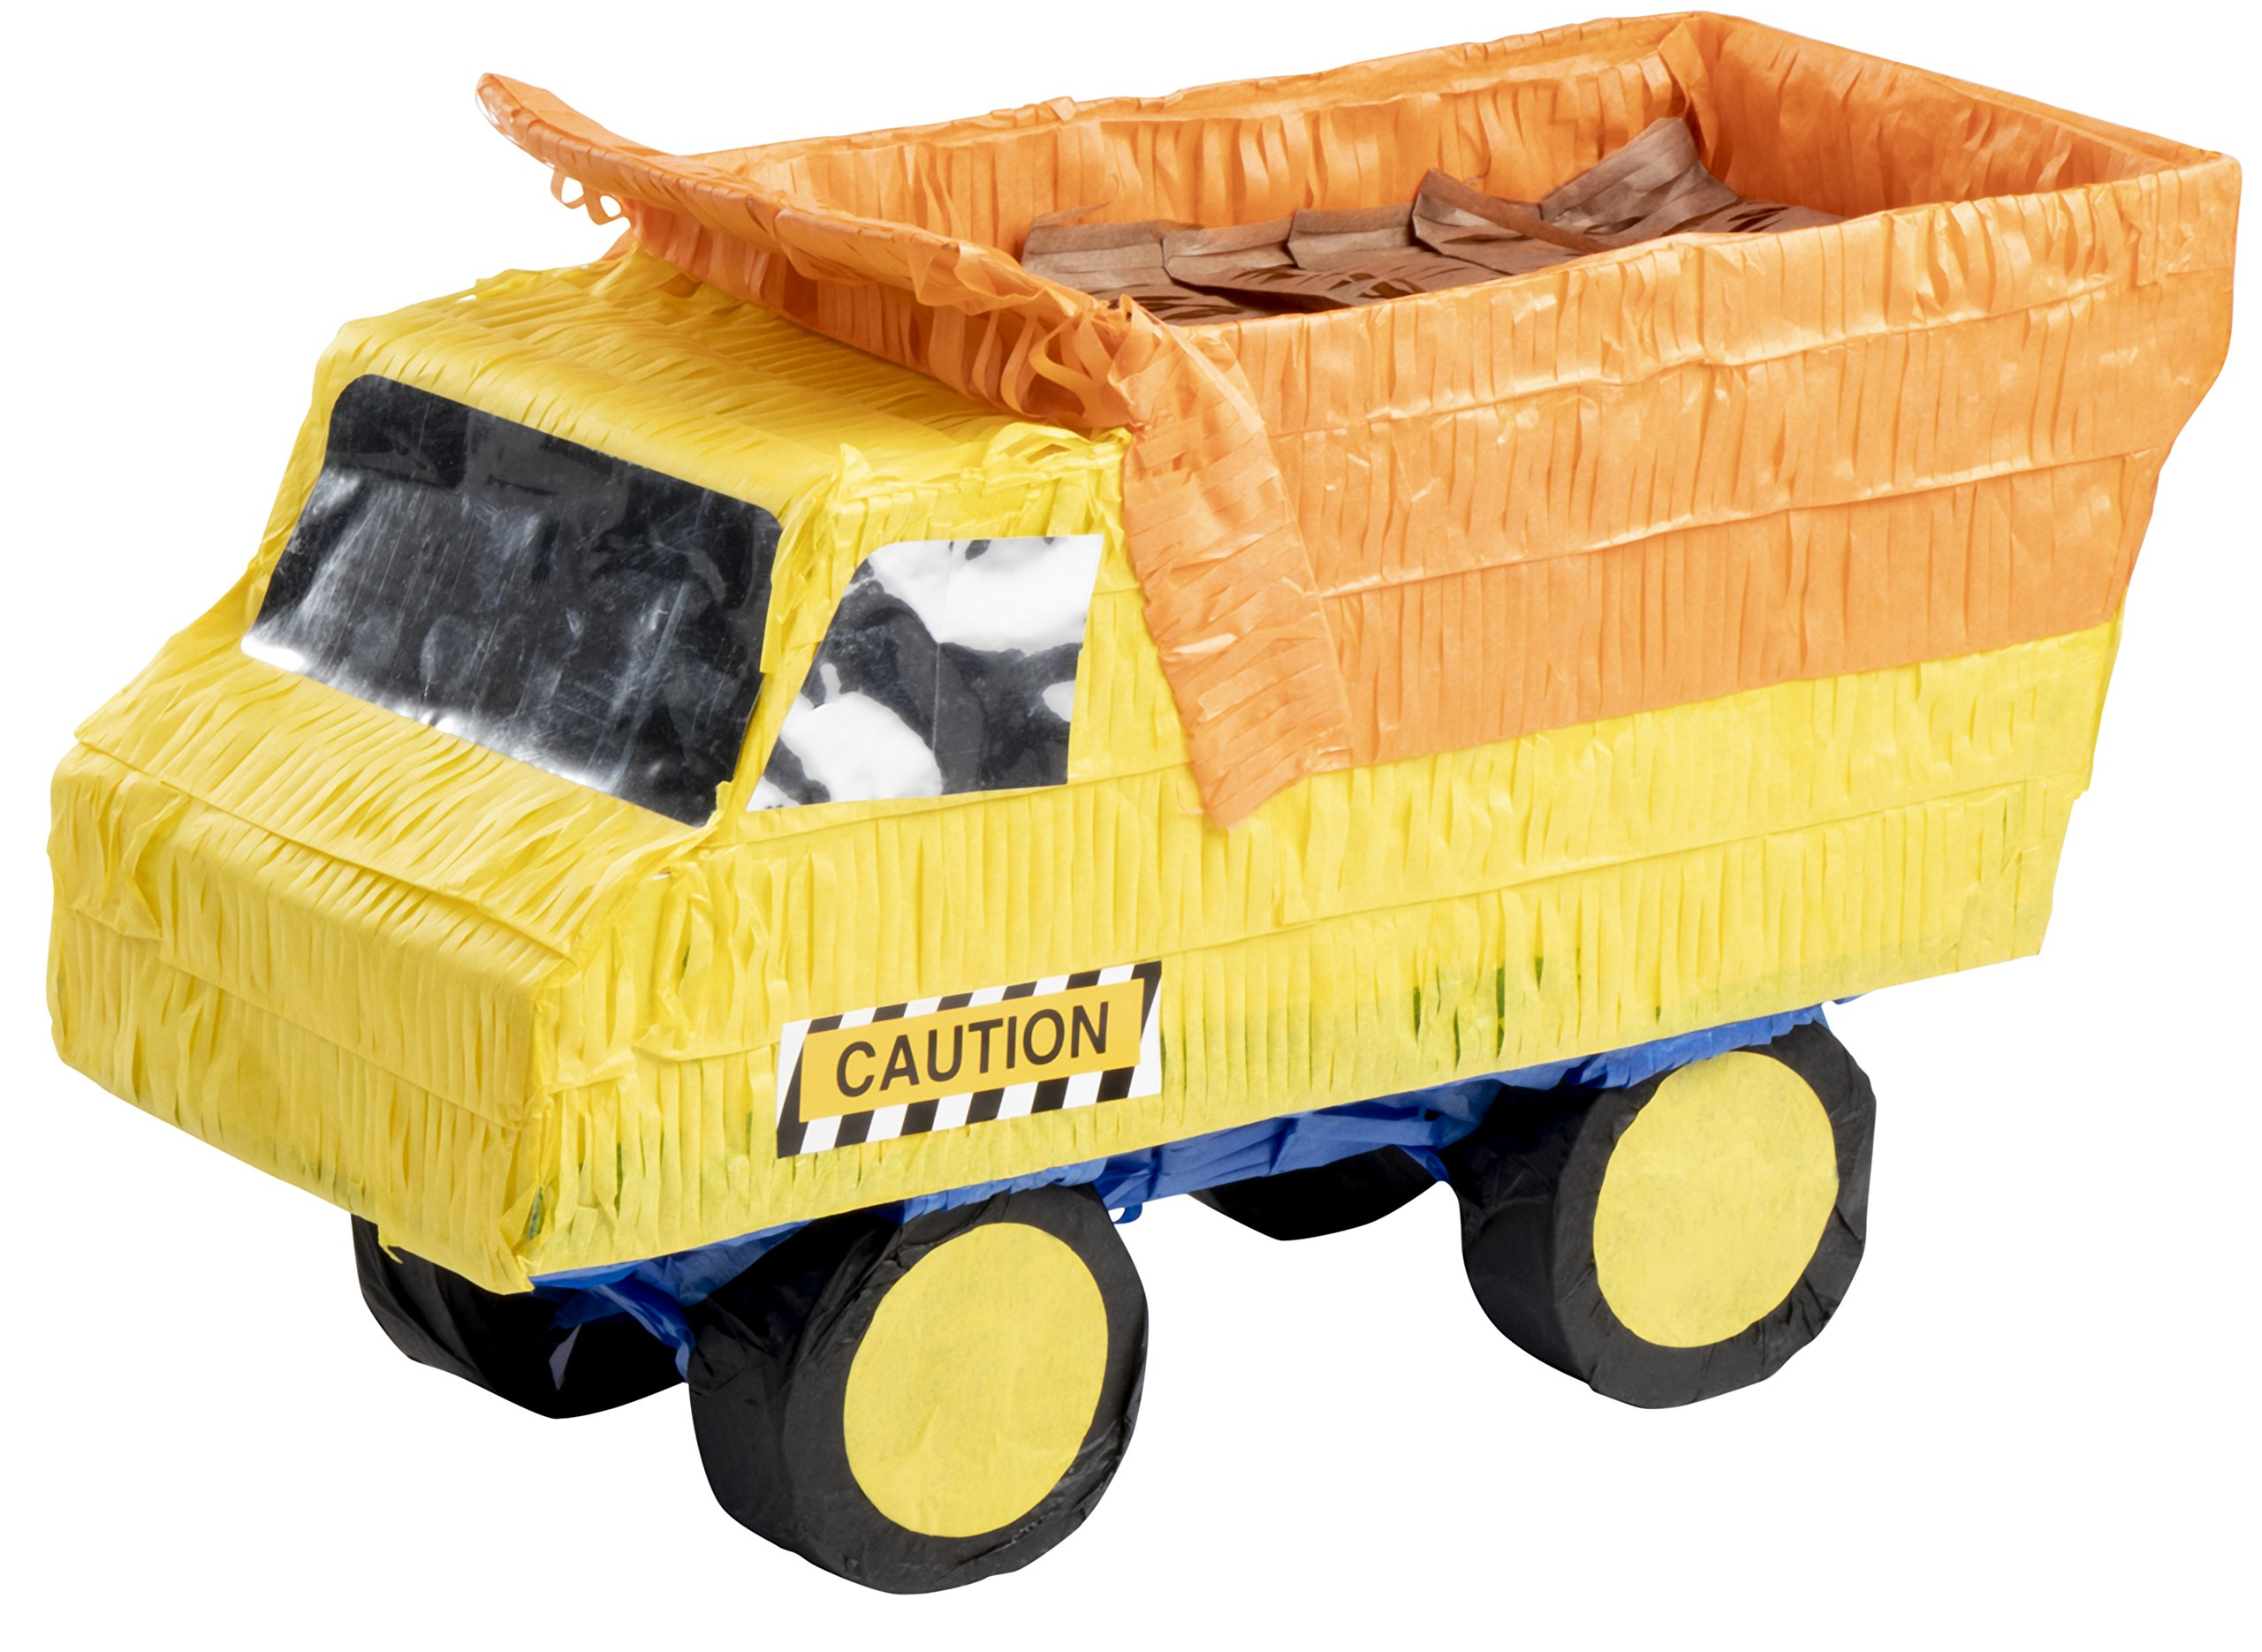 Blue Panda Small Dump Truck Pinata, Kids Construction Birthday Party Supplies, 15.5 x 9 x 6 Inches by Blue Panda